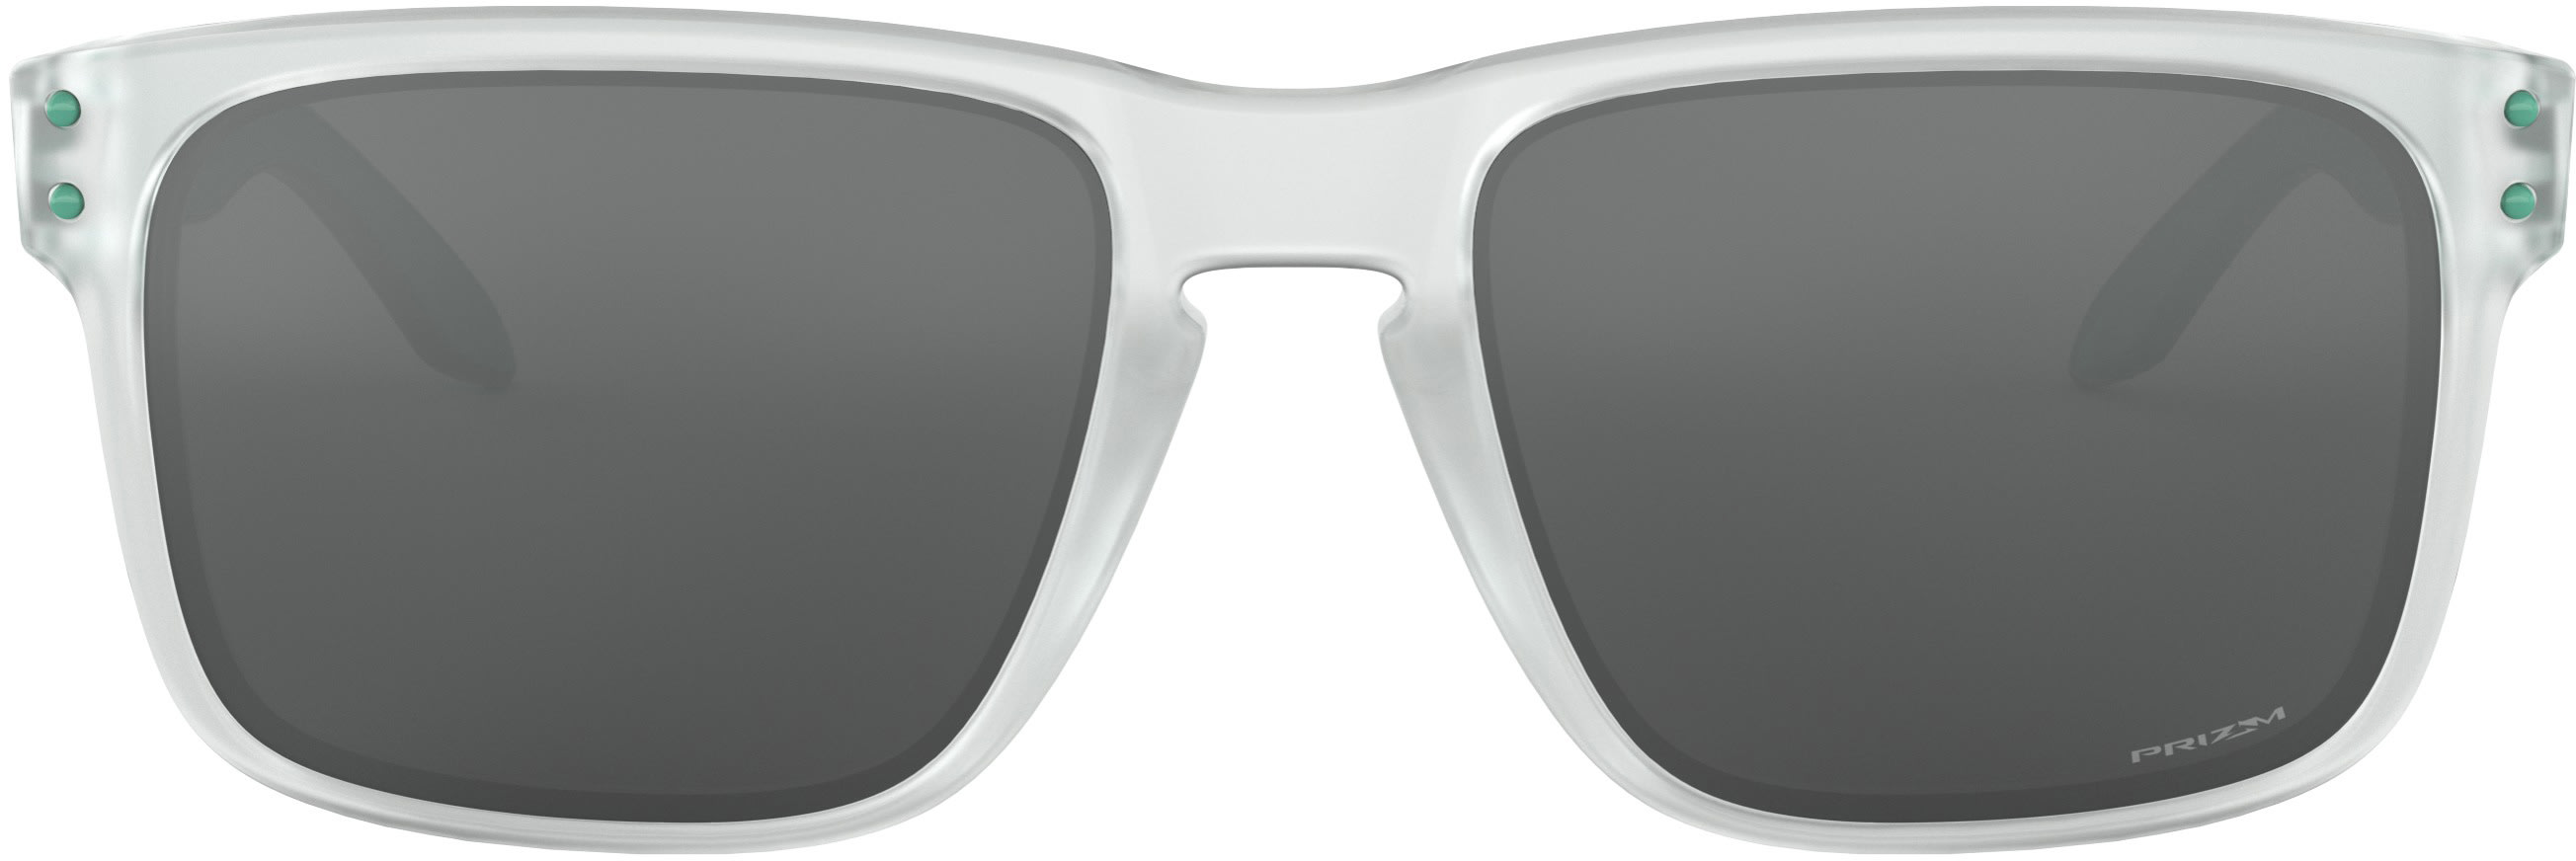 d4a363499c Oakley Holbrook Crystal Pop Collection Sunglasses - thumbnail 2